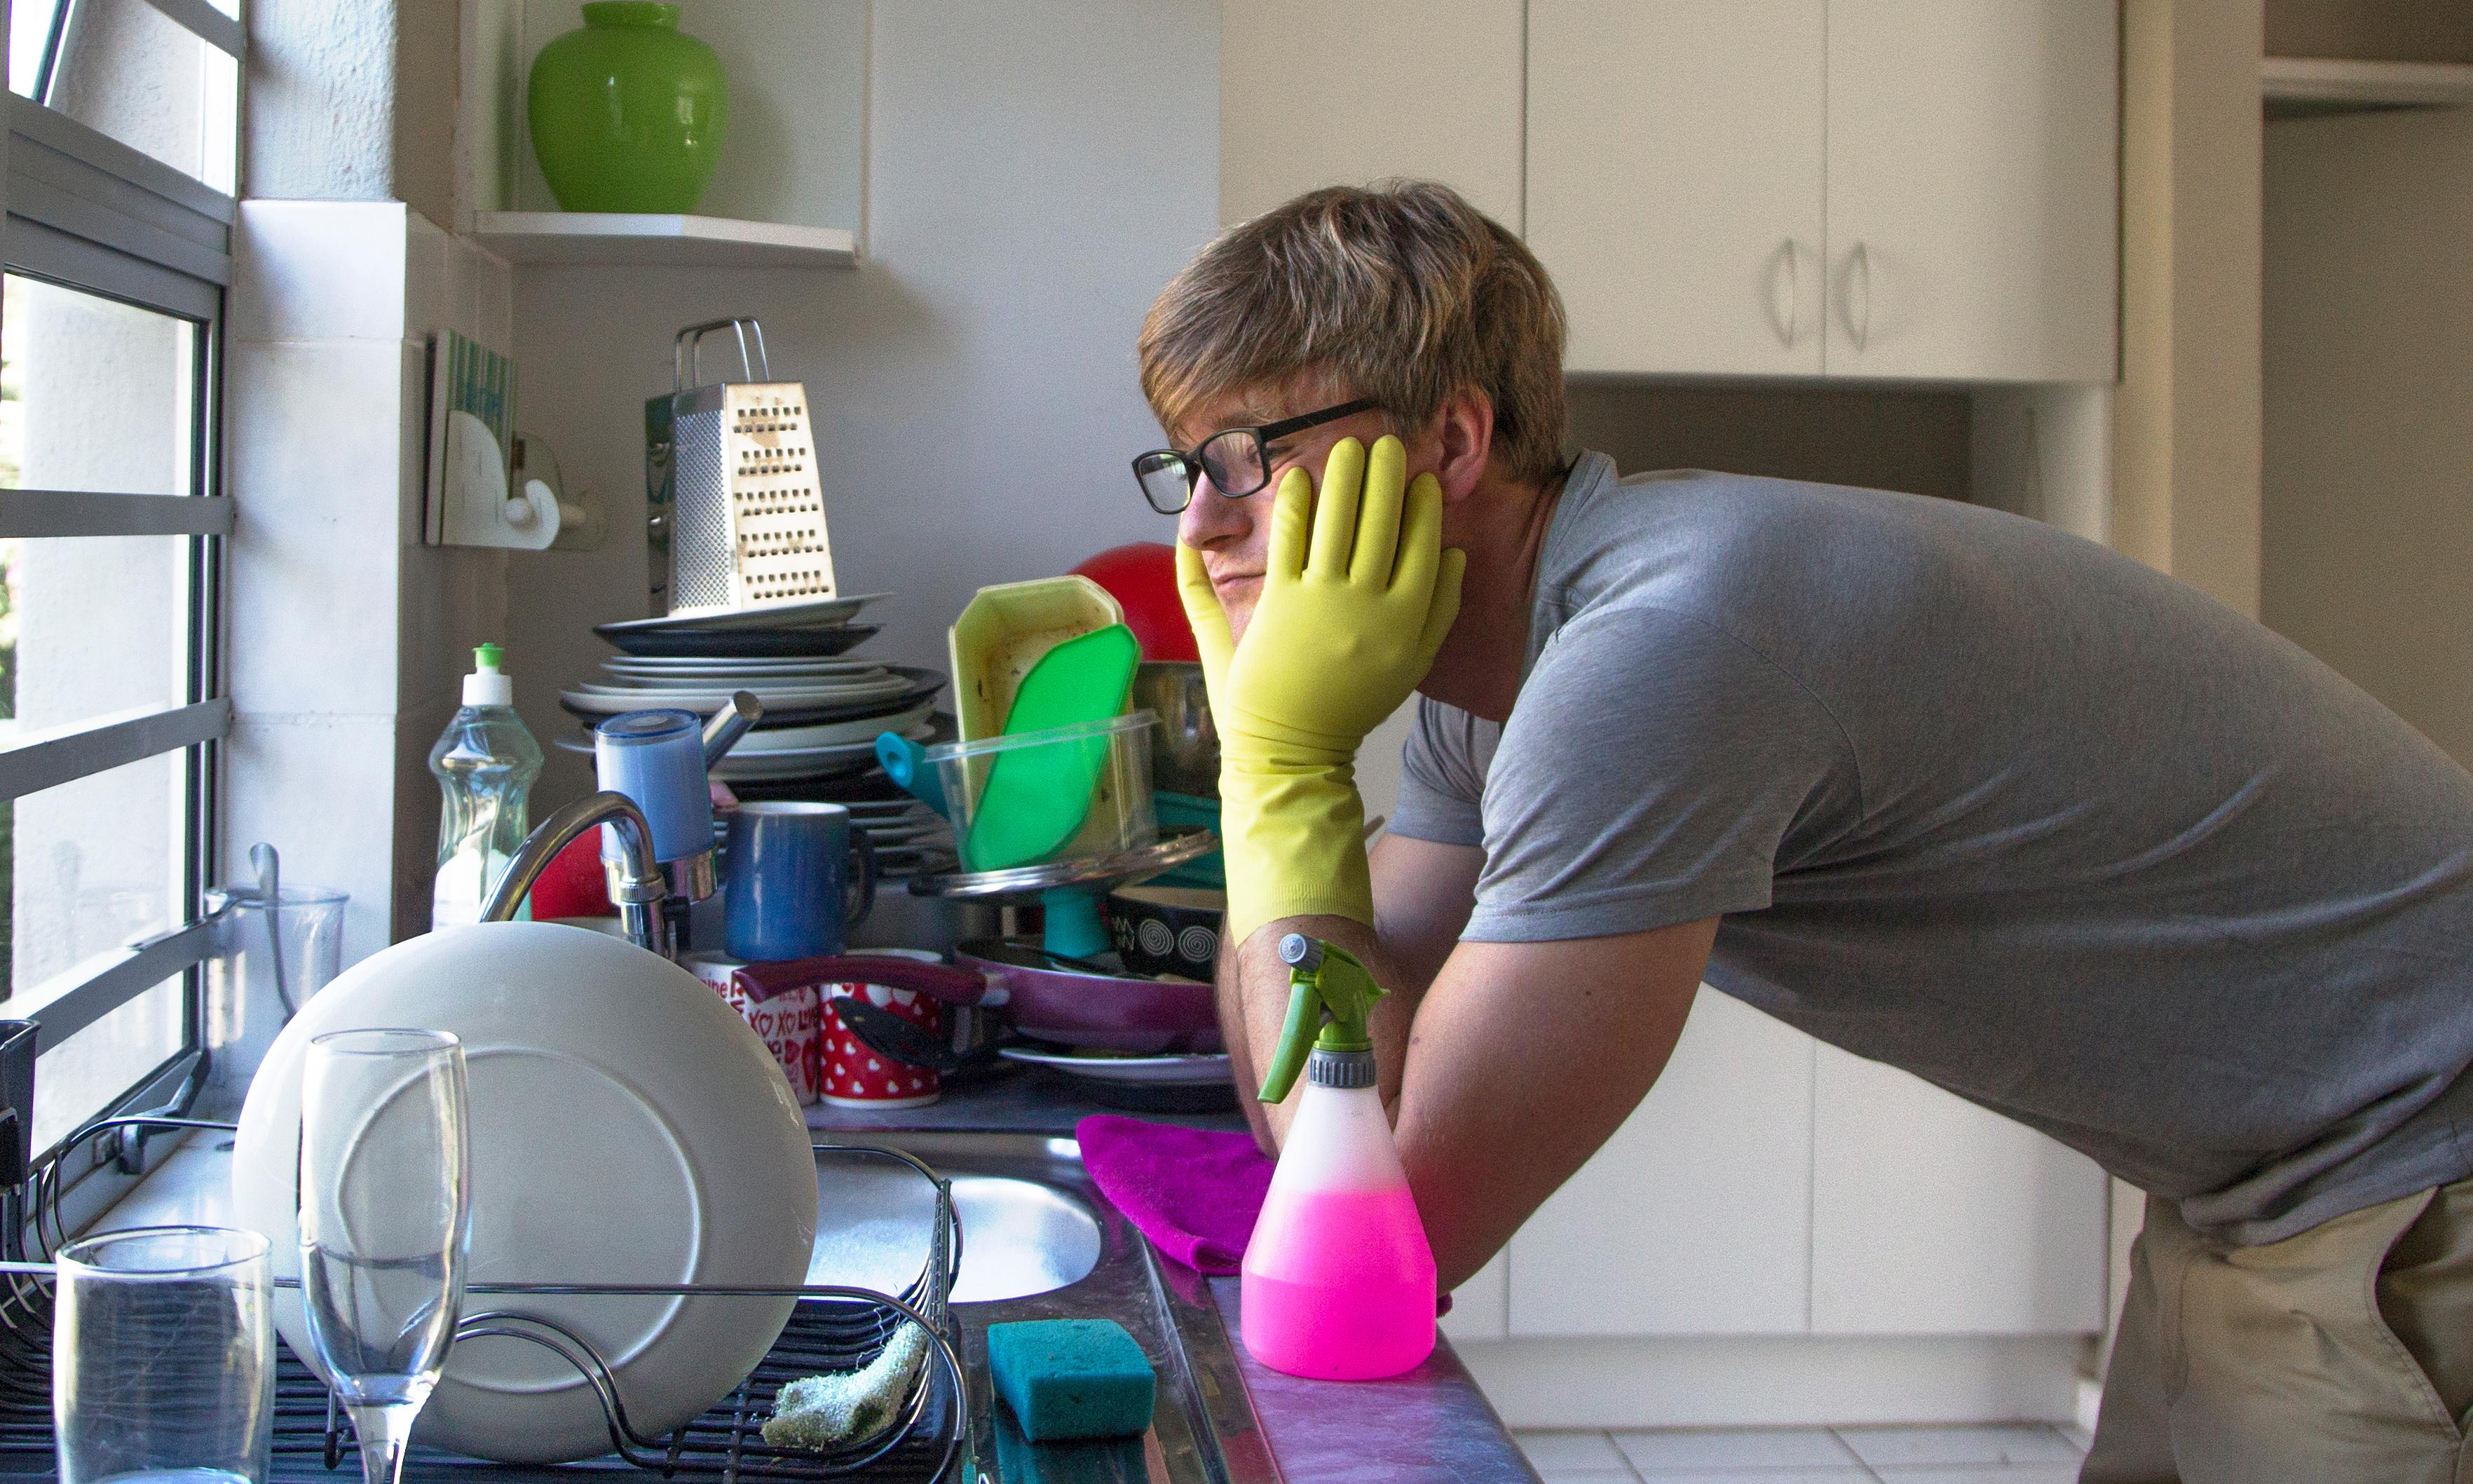 Housework could keep brain young, research suggests